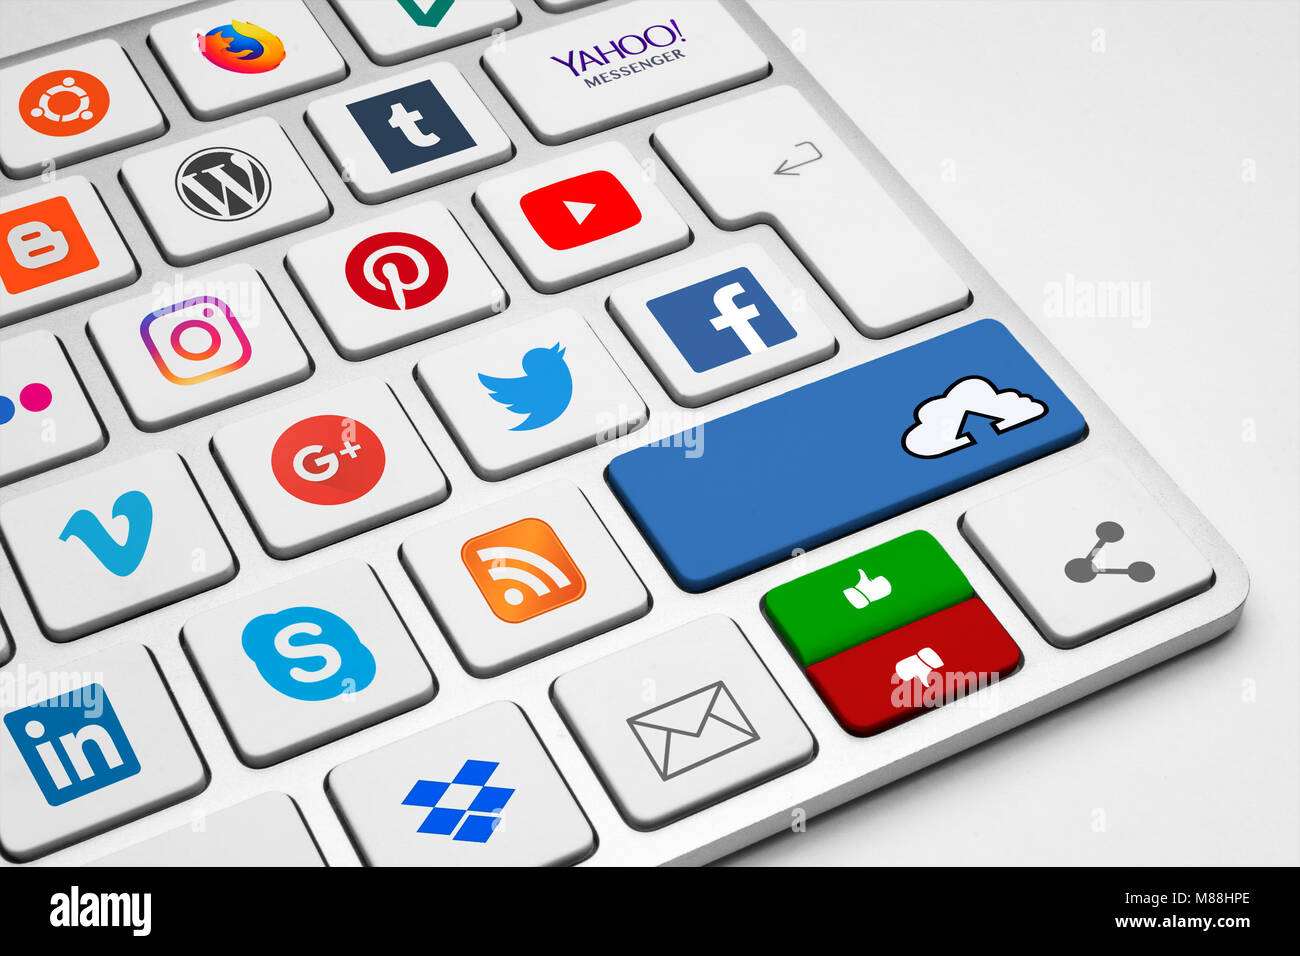 Conceptual keyboard with internet, communication and social media company logotypes illustrating the contemporary Stock Photo